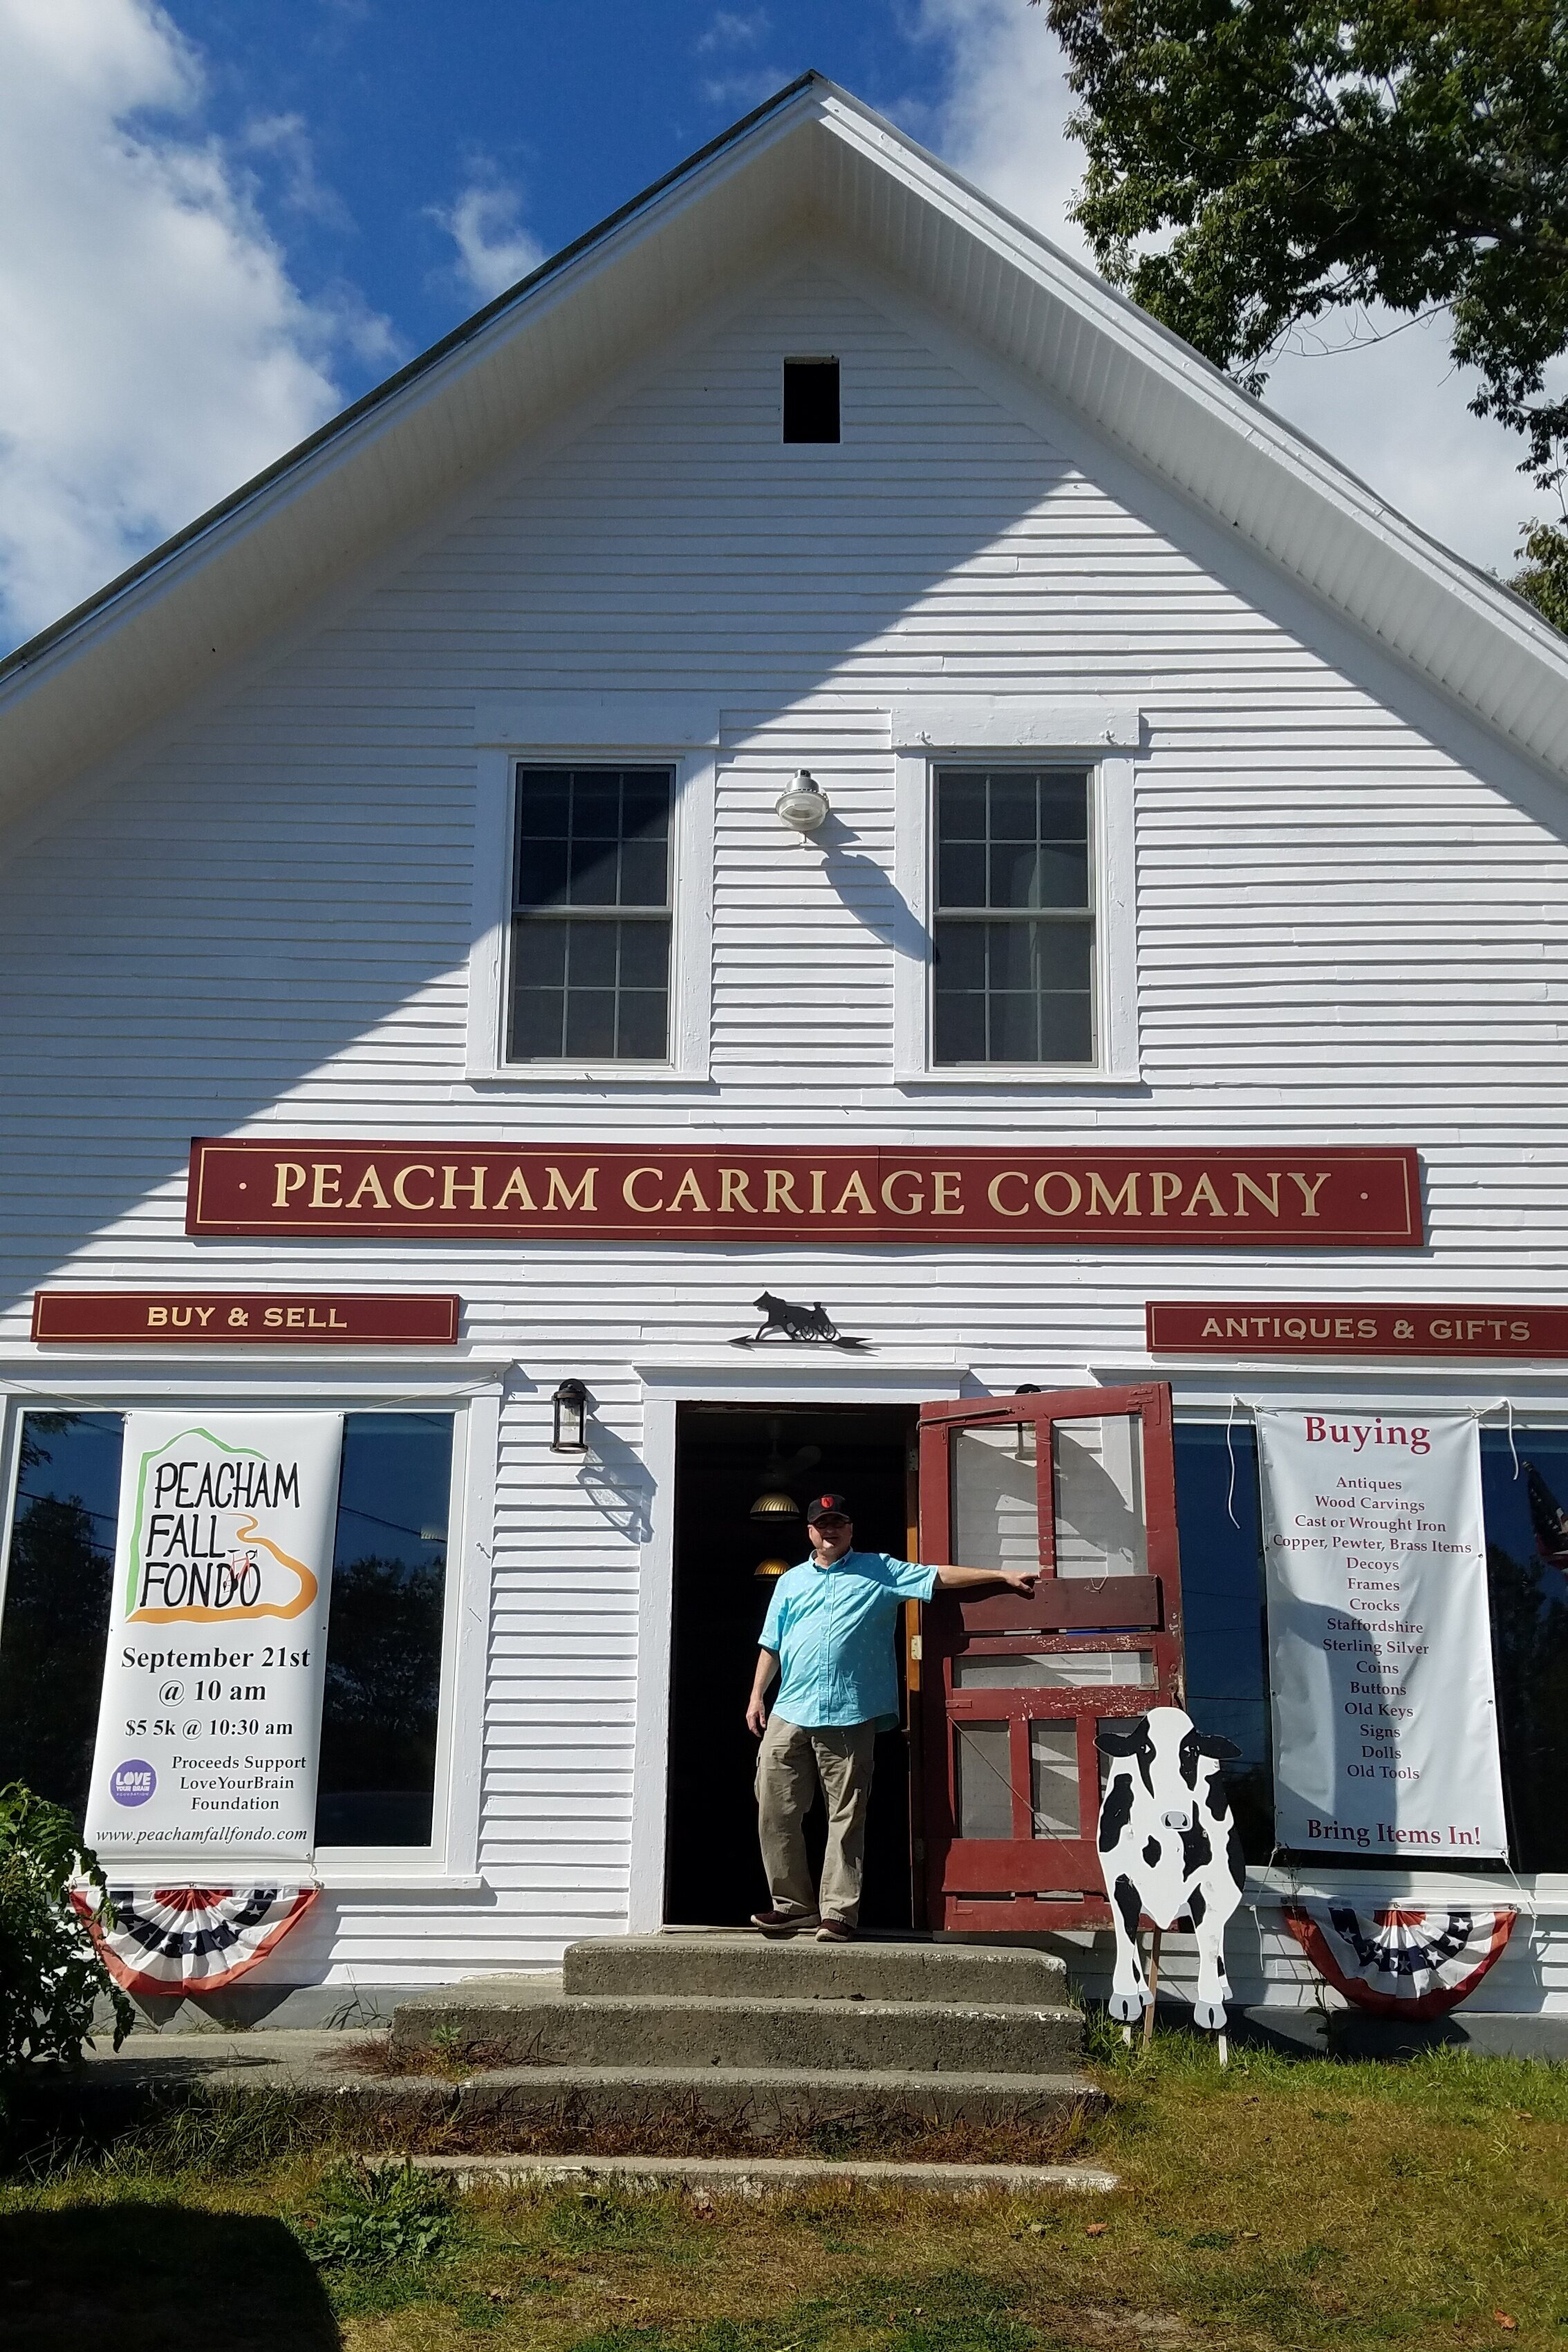 John from  Peacham Carriage Company  is an enthusiastic supporter of PFF.